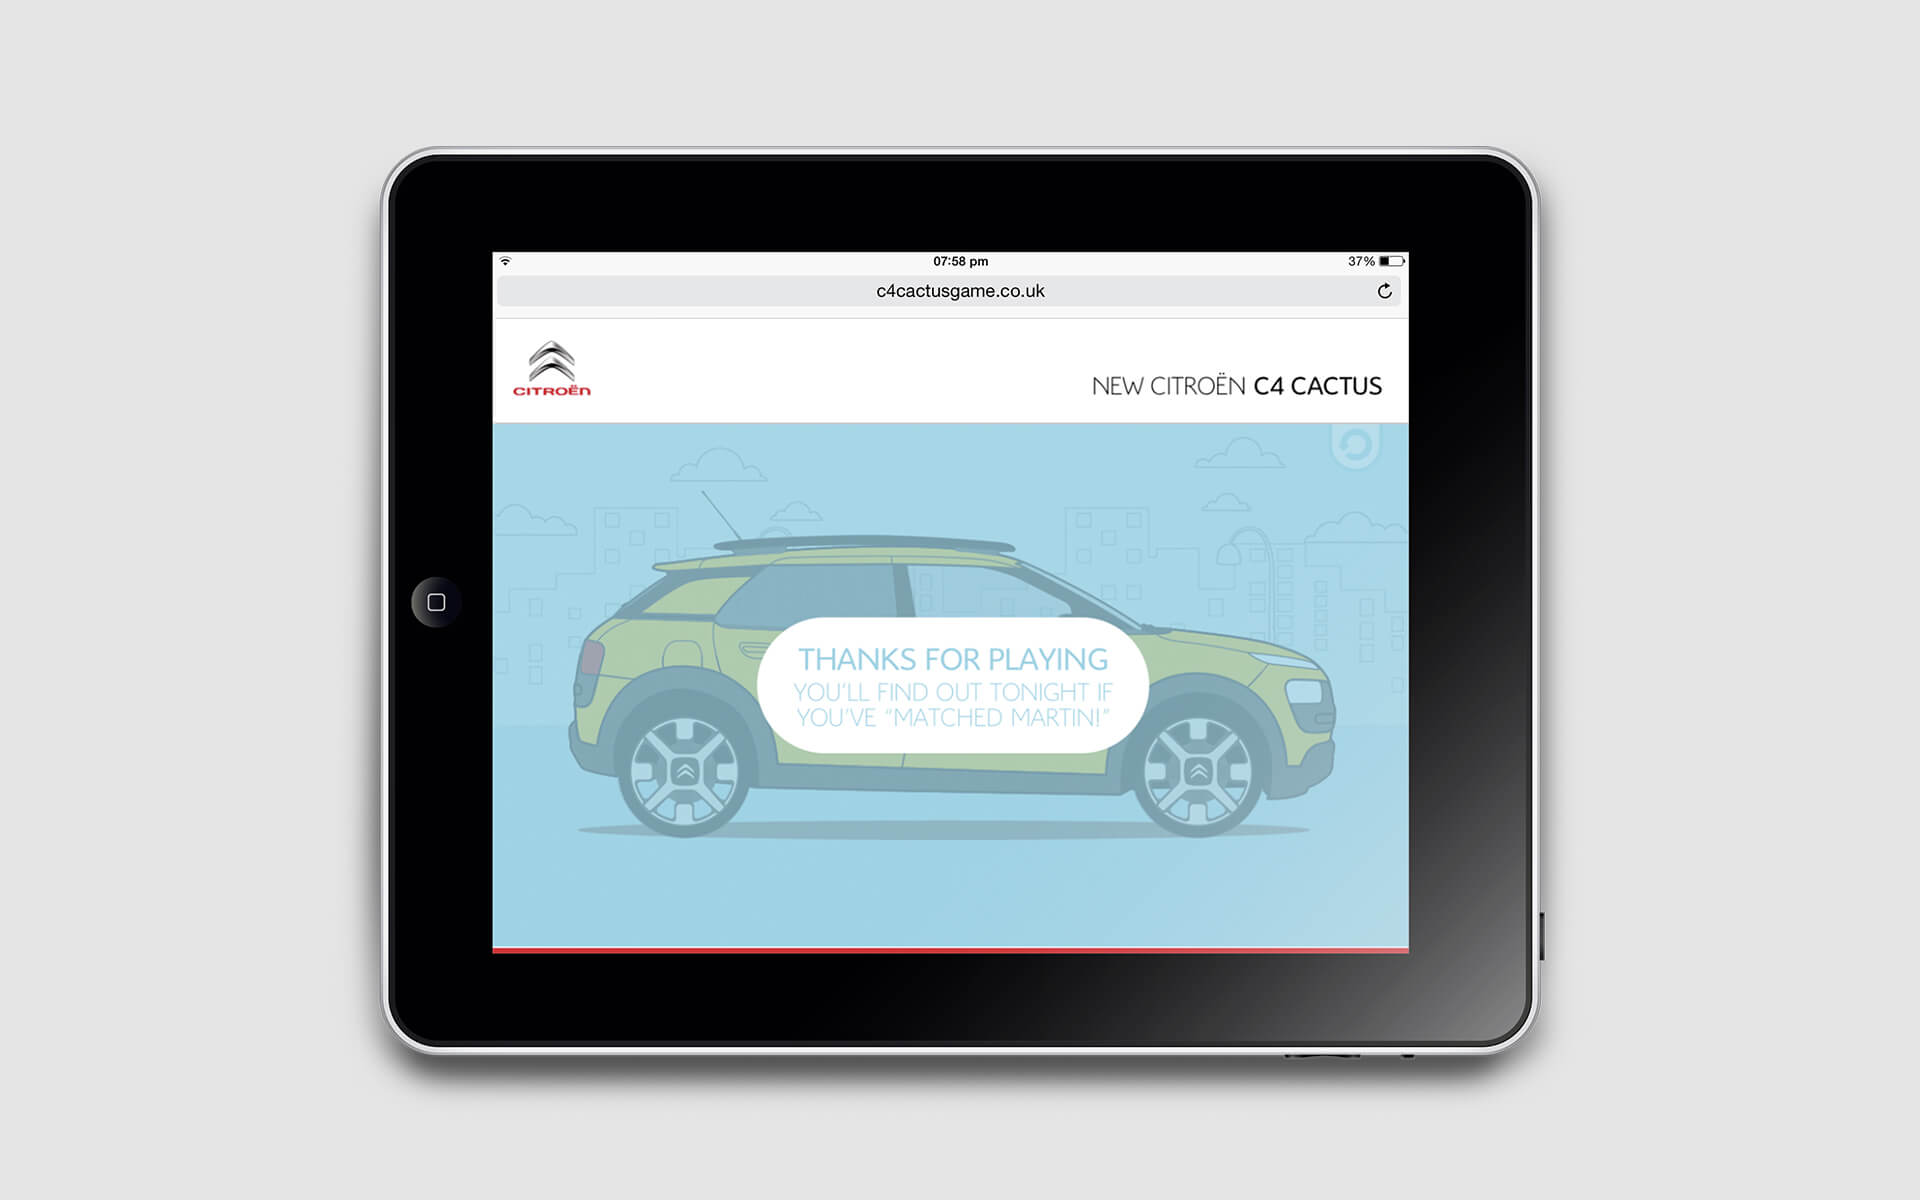 Citroen C4 Cactus Launch game